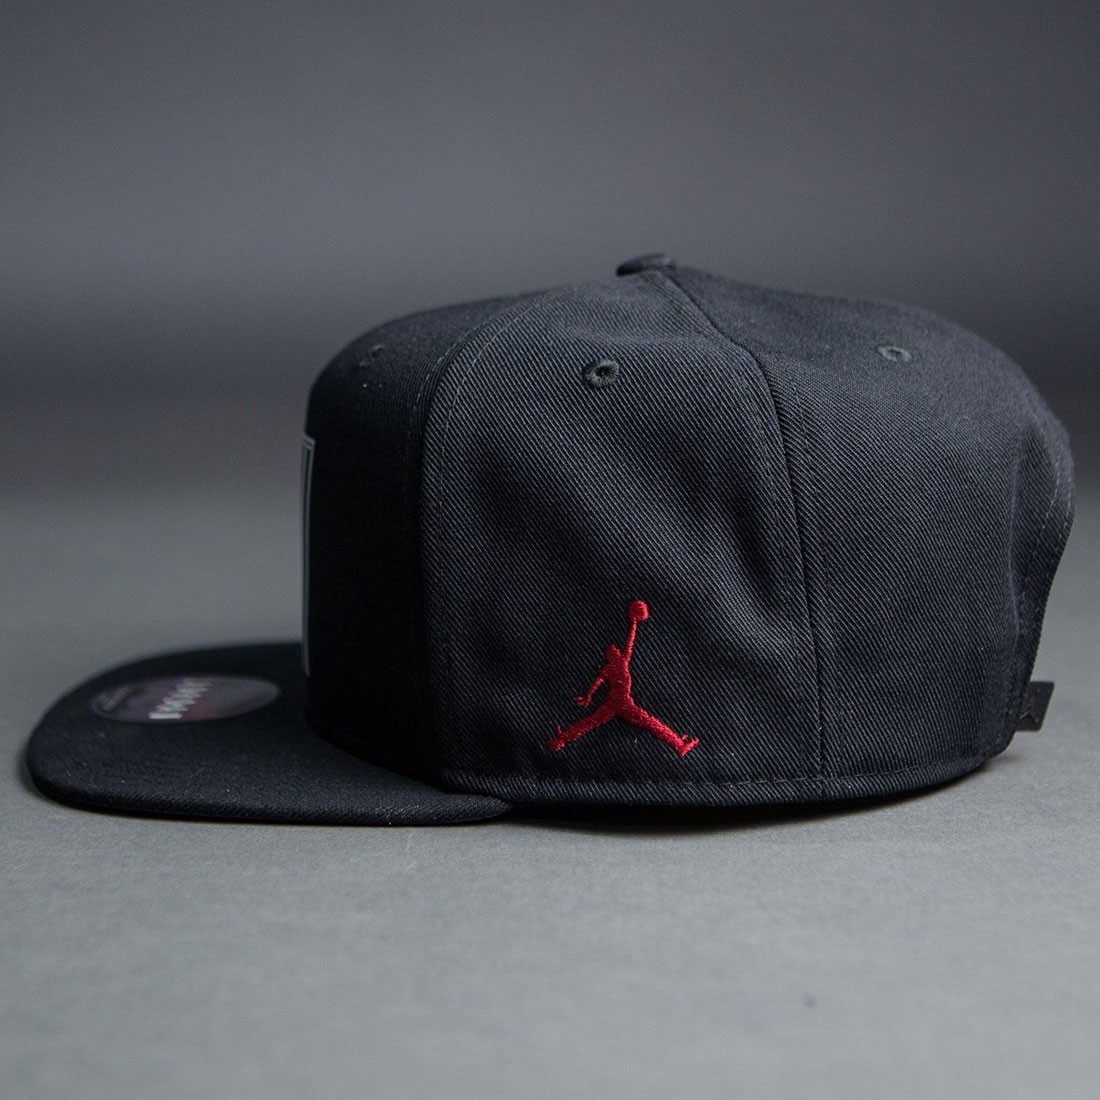 ec6986f1 jordan men air jordan 11 low snapback cap black gym red